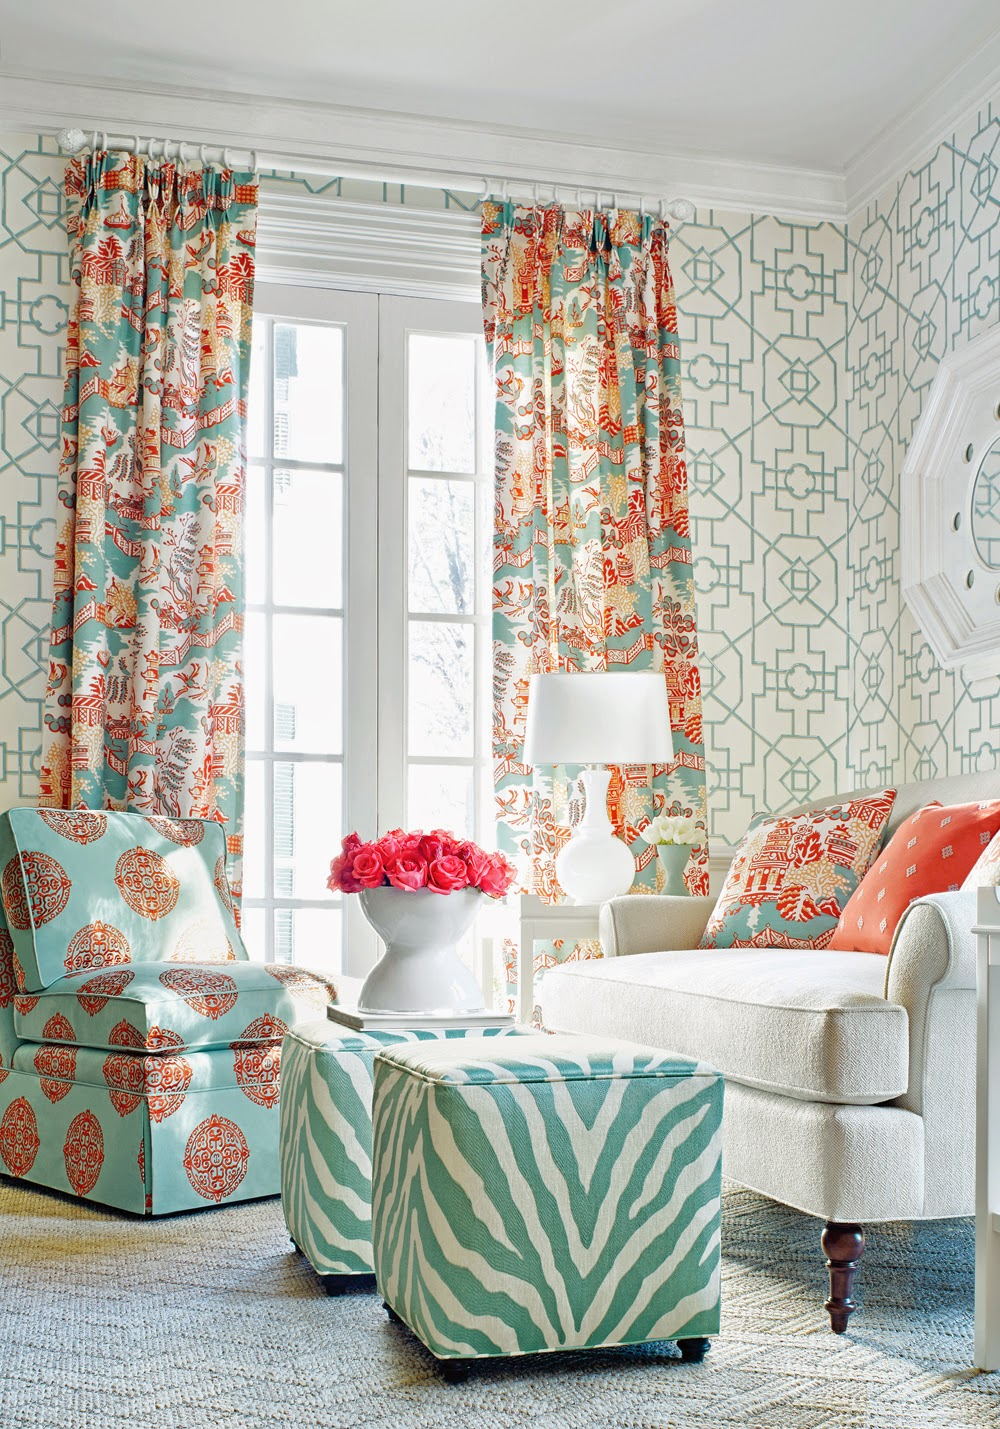 http://www.thibautdesign.com/collection/high_res.php?patternID=1521&productID=10687